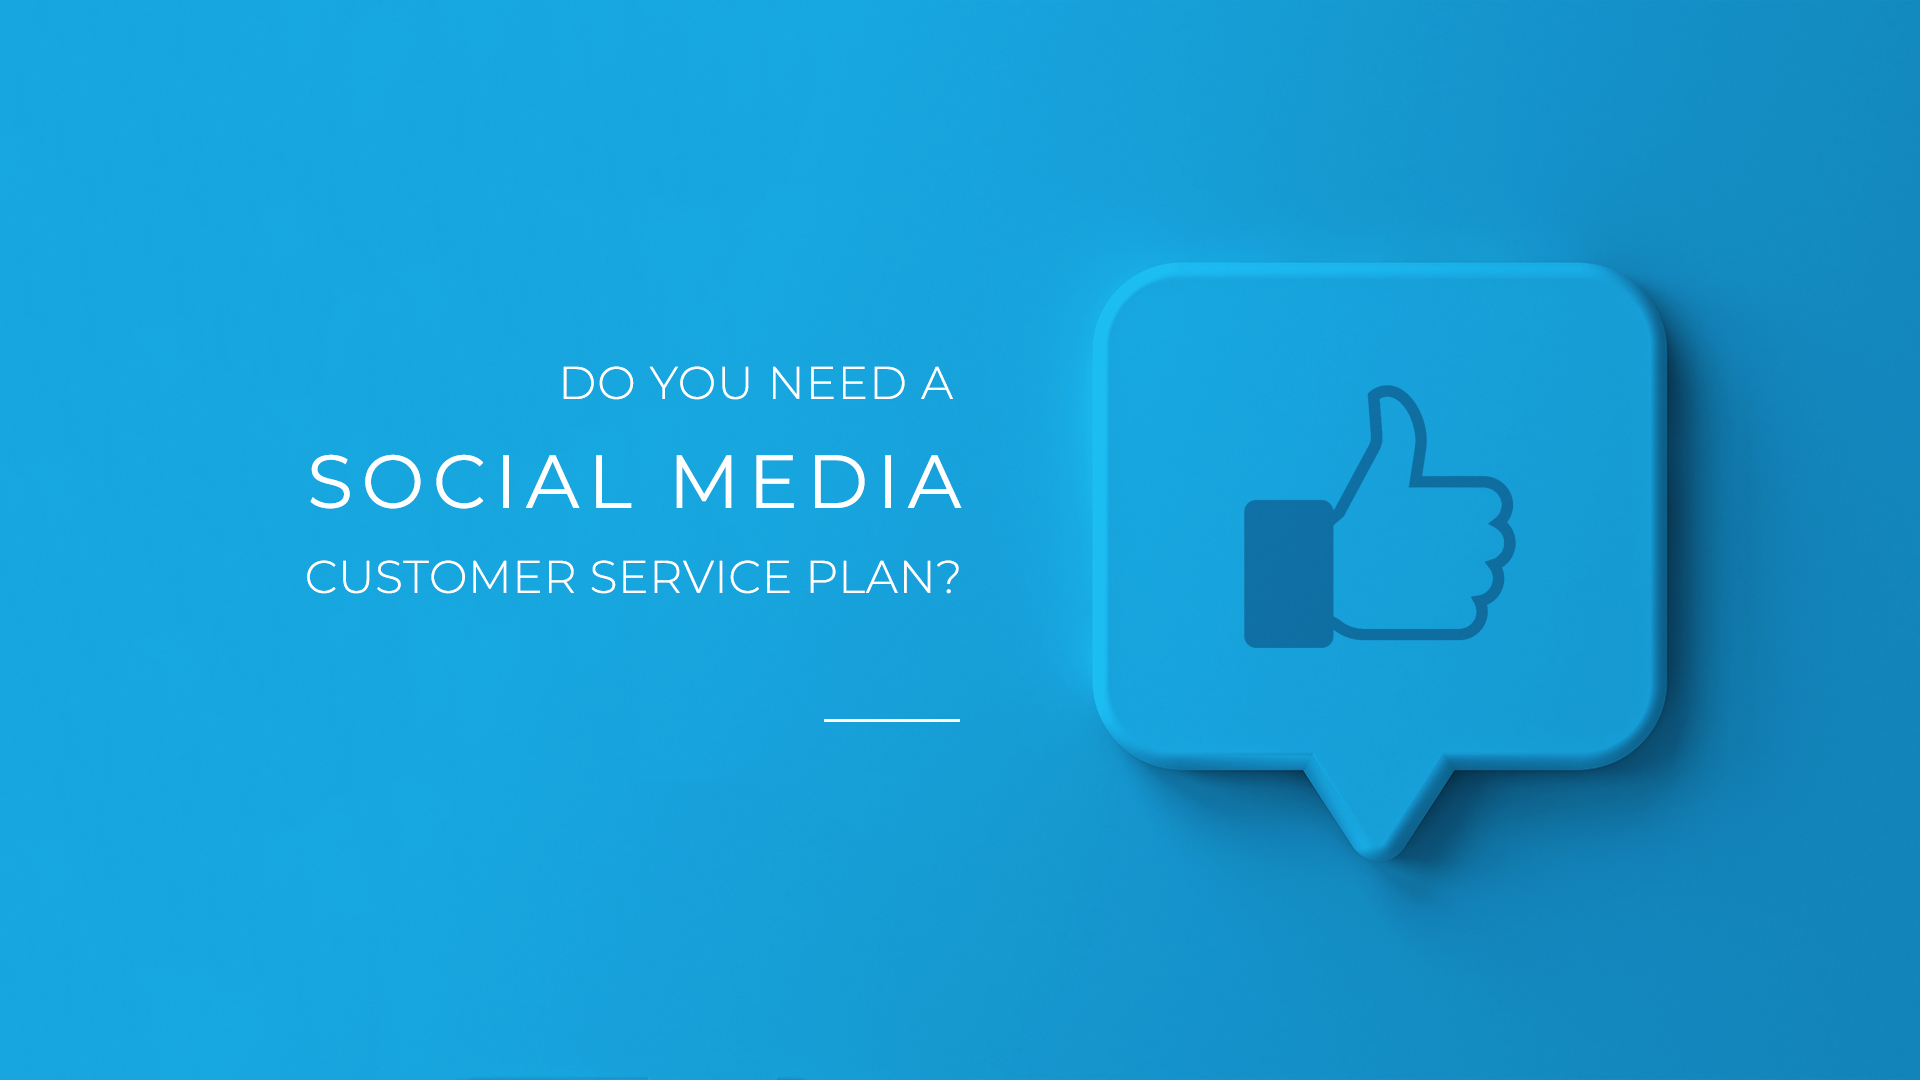 Do You Need a Social Media Customer Service Plan?